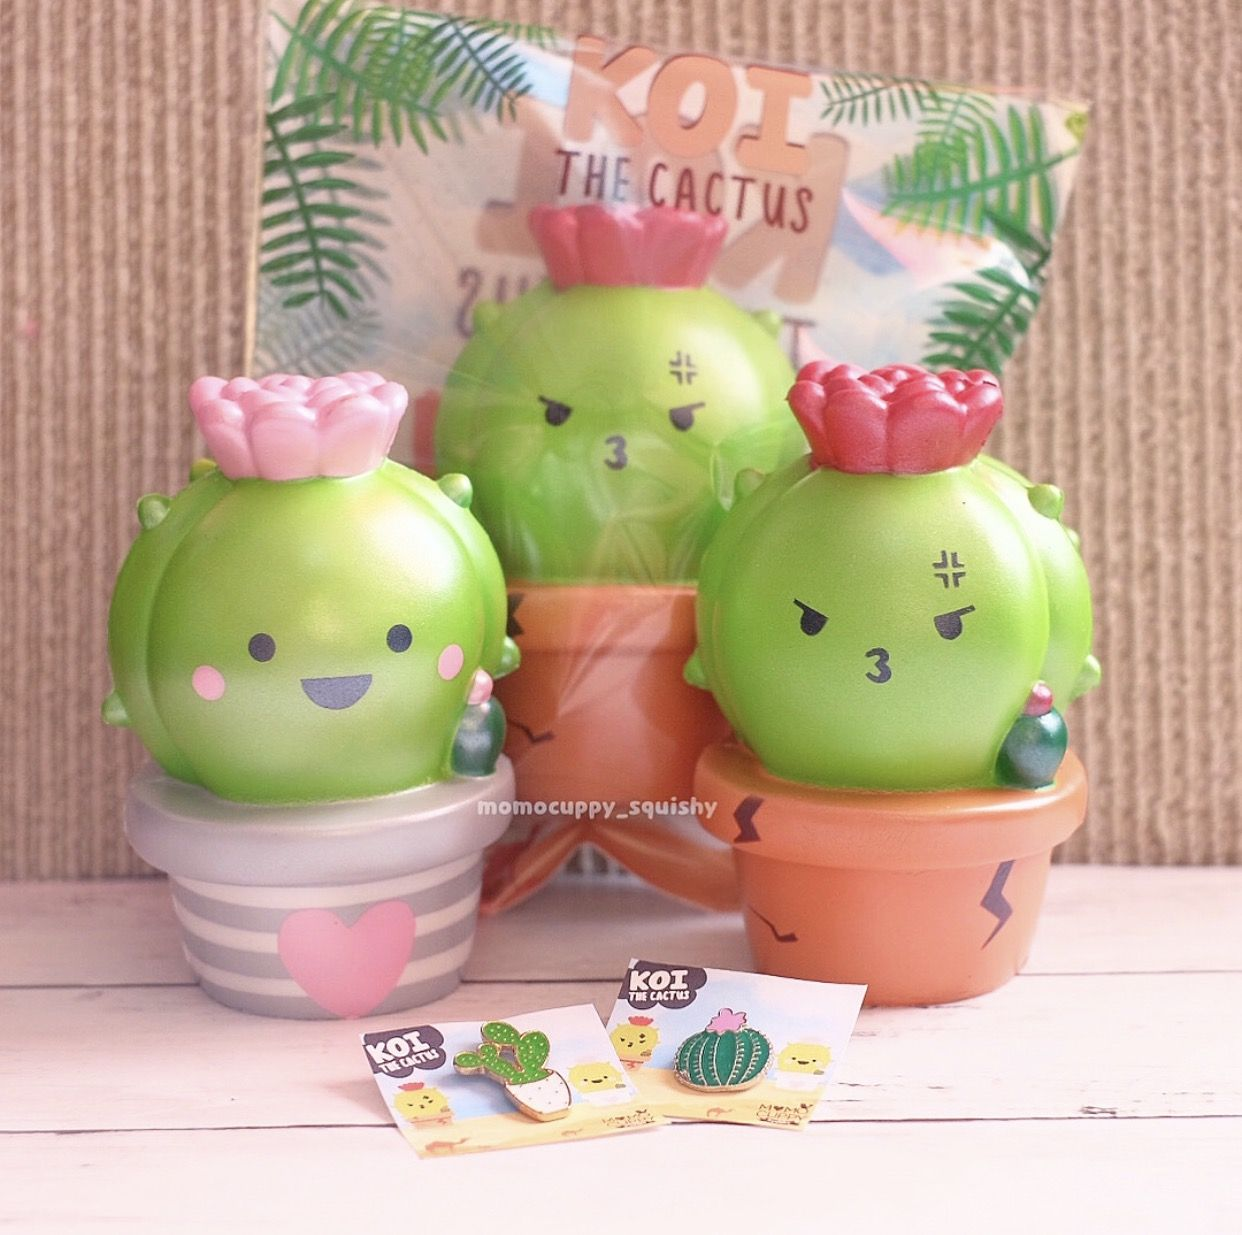 Squishies for sale - Cactus Squishies Cute Squishies Shop Buy Online